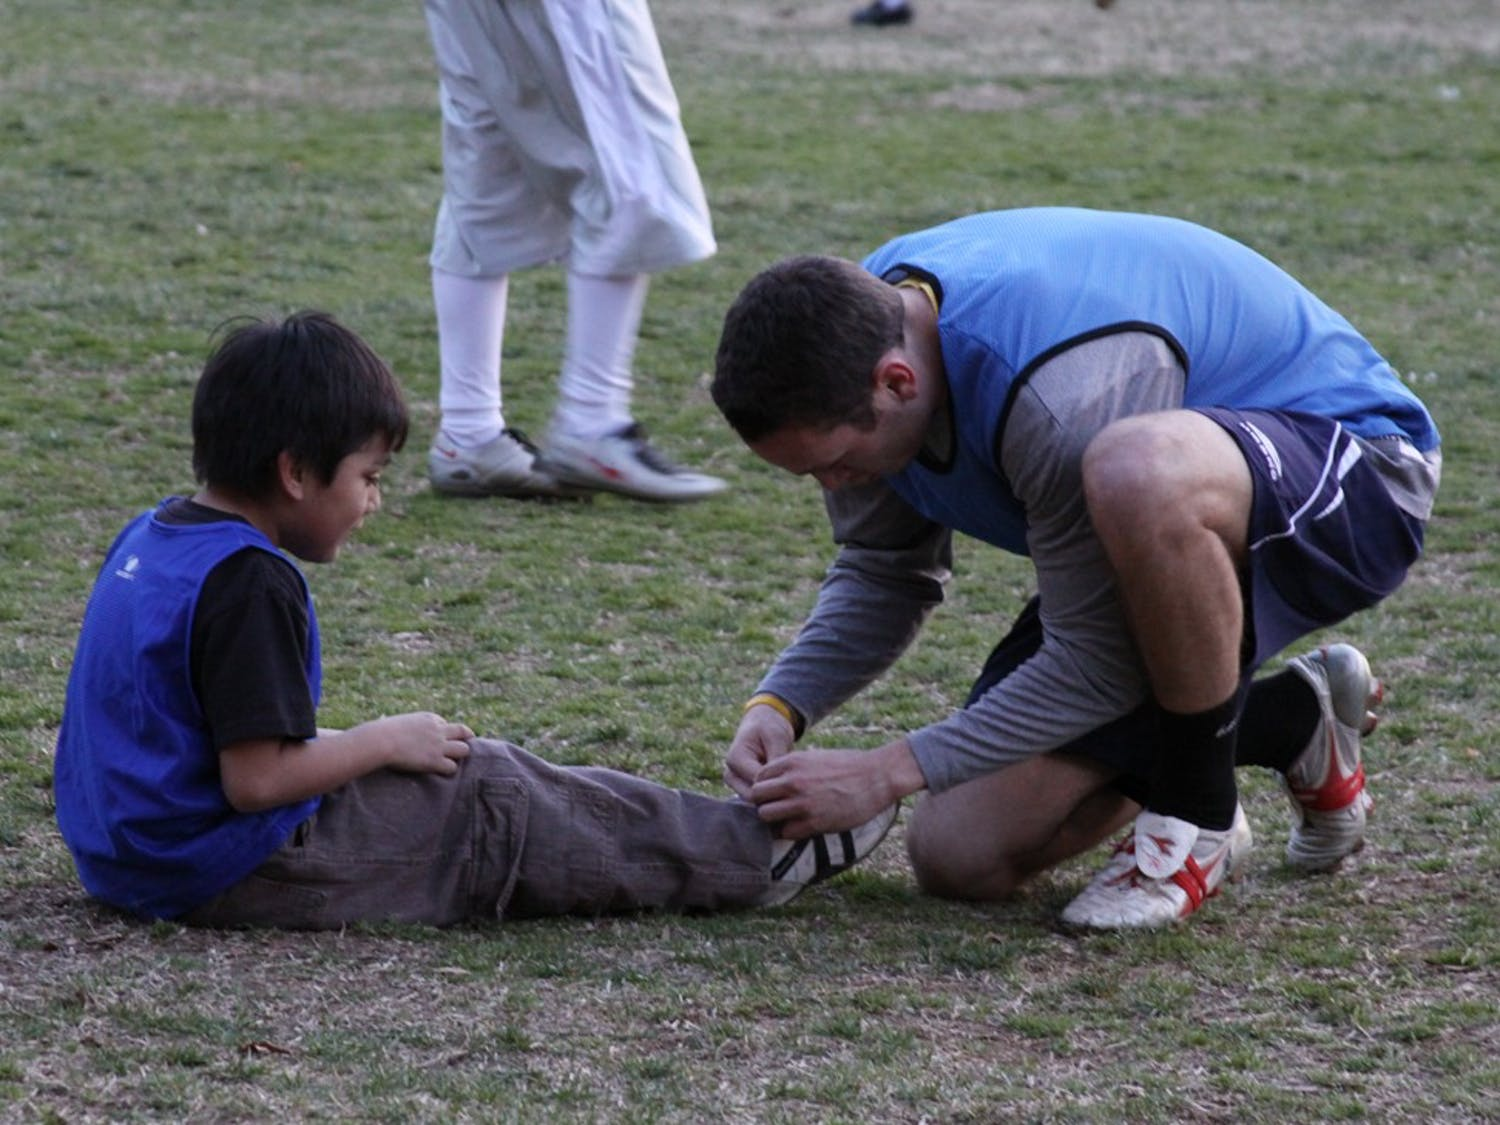 A volunteer ties the shoe laces of the youngest player Thursday evening. A number of sociology 273 students visit Abbey Court community every Thursday for a round of soccer with the local kids.